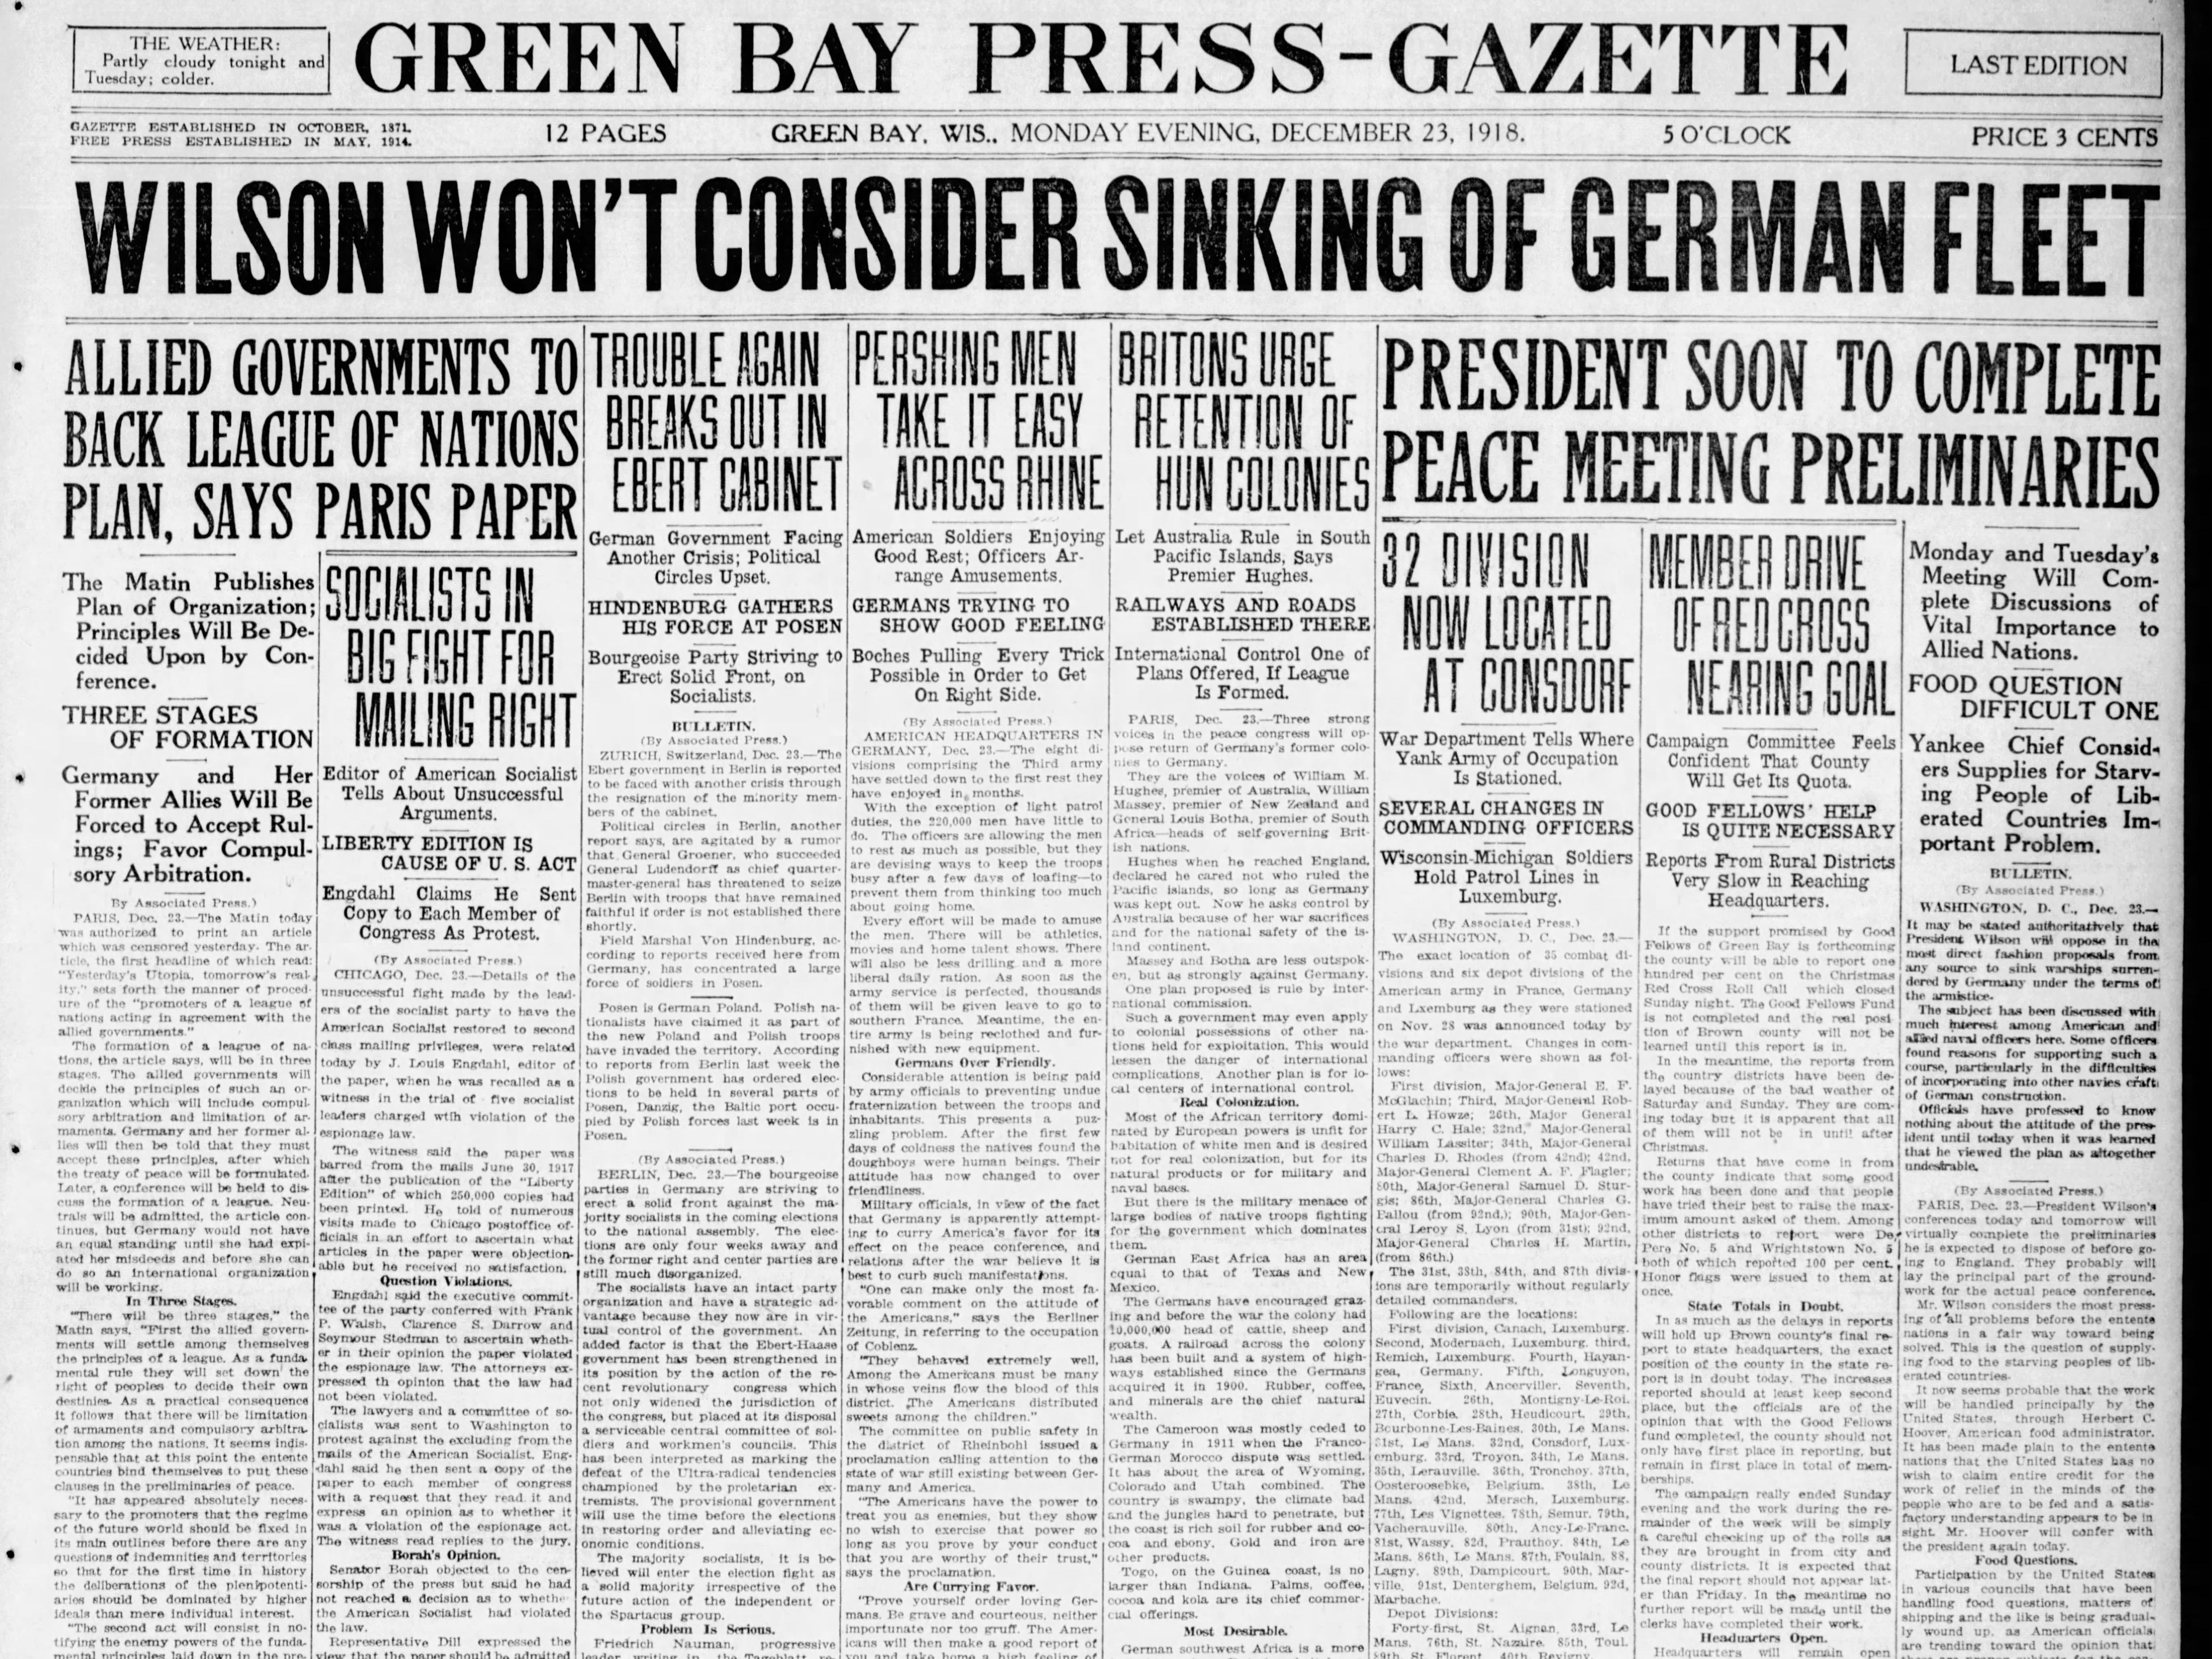 Today in History: Dec. 23, 1918